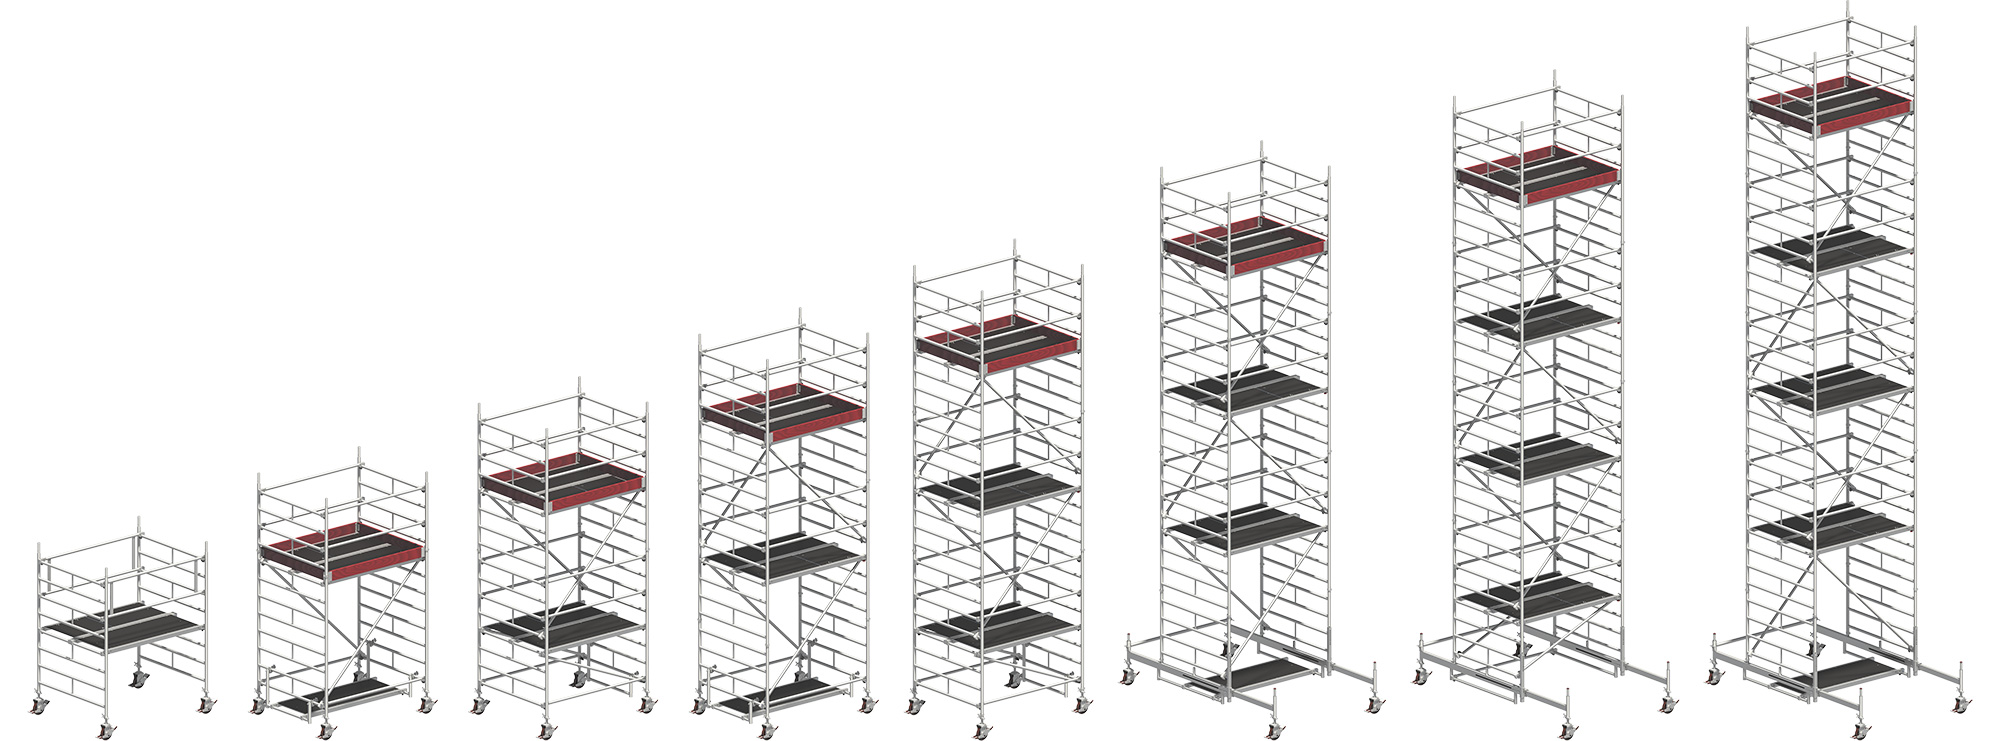 Uni Compact Rolling Tower working height range from 3.20m to 10.38m